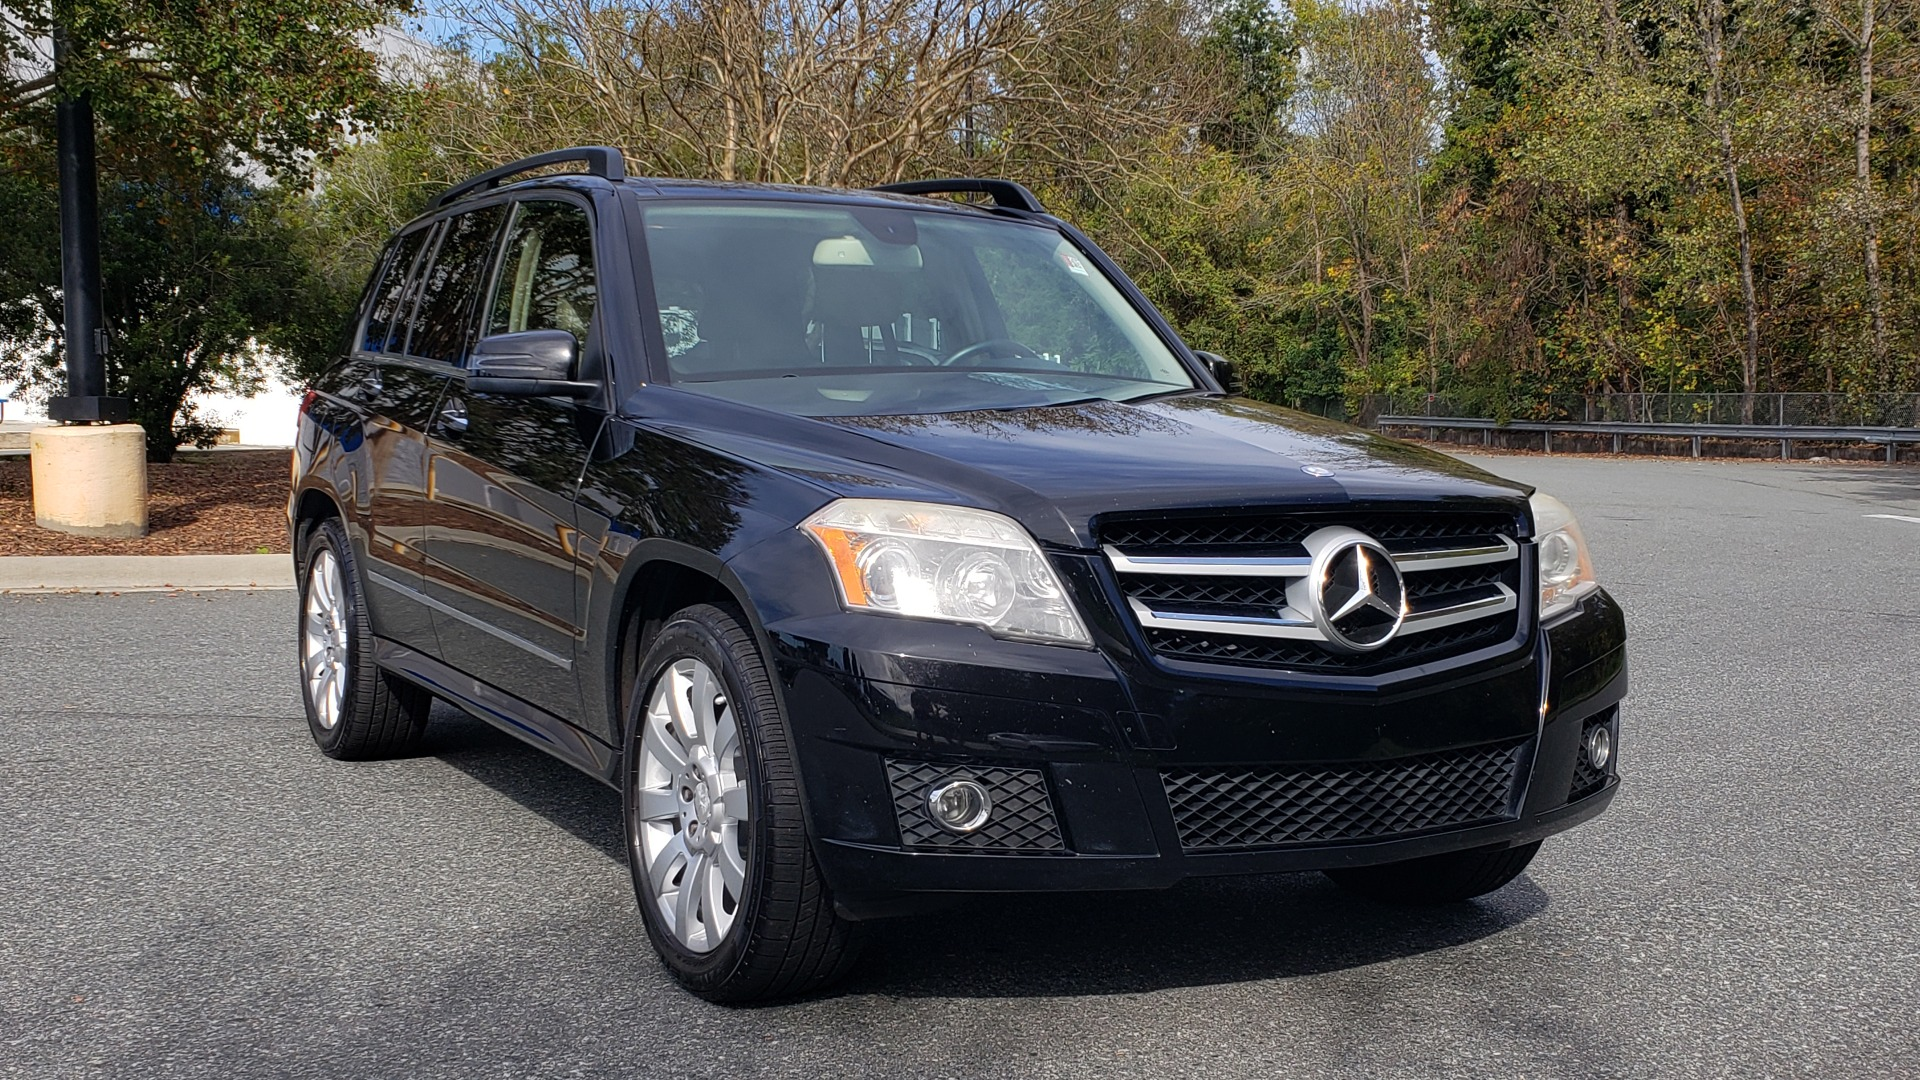 Used 2012 Mercedes-Benz GLK-CLASS GLK 350 4MATIC / PREM PKG / SUNROOF / KEYLESS-GO / NAV / REARVIEW for sale Sold at Formula Imports in Charlotte NC 28227 4